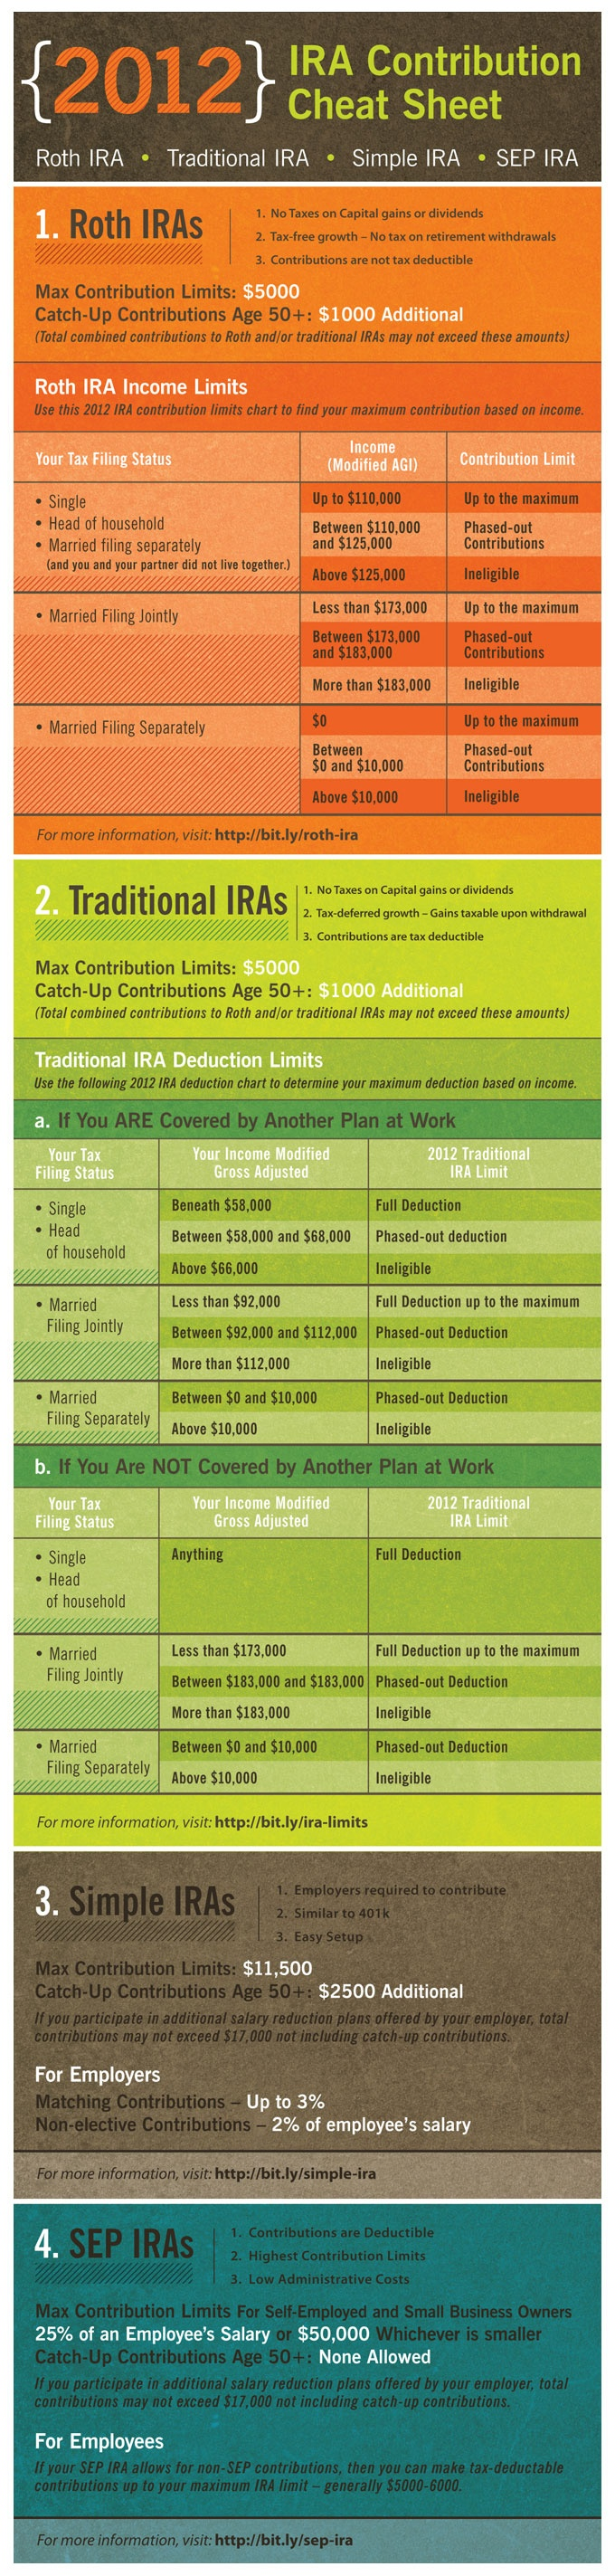 2012 IRA Contribution Cheat Sheet